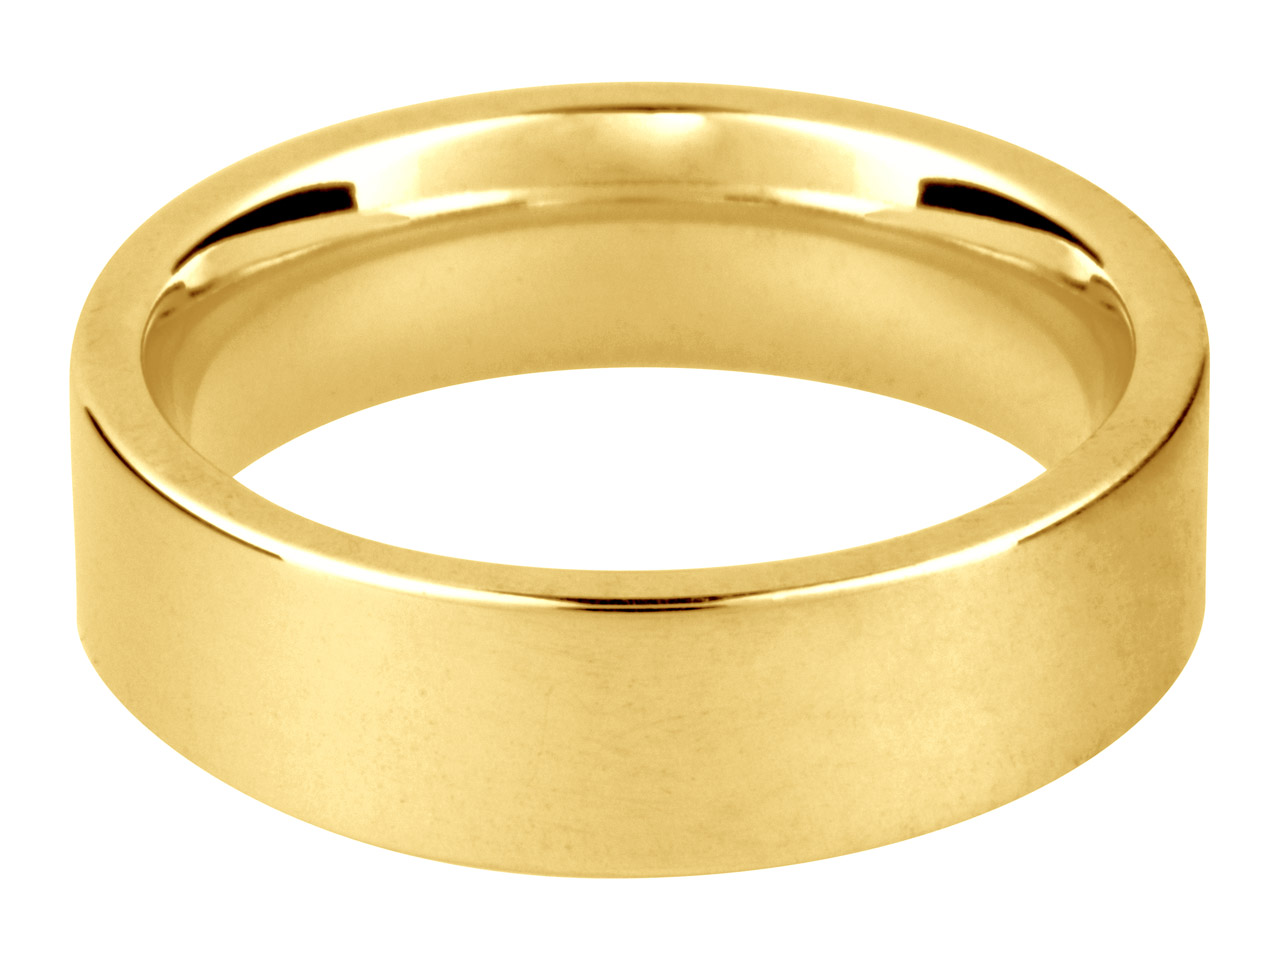 9ct Yellow Easy Fit Wedding Ring   2.0mm J 1.8gms Medium Weight       Hallmarked Wall Thickness 1.47mm